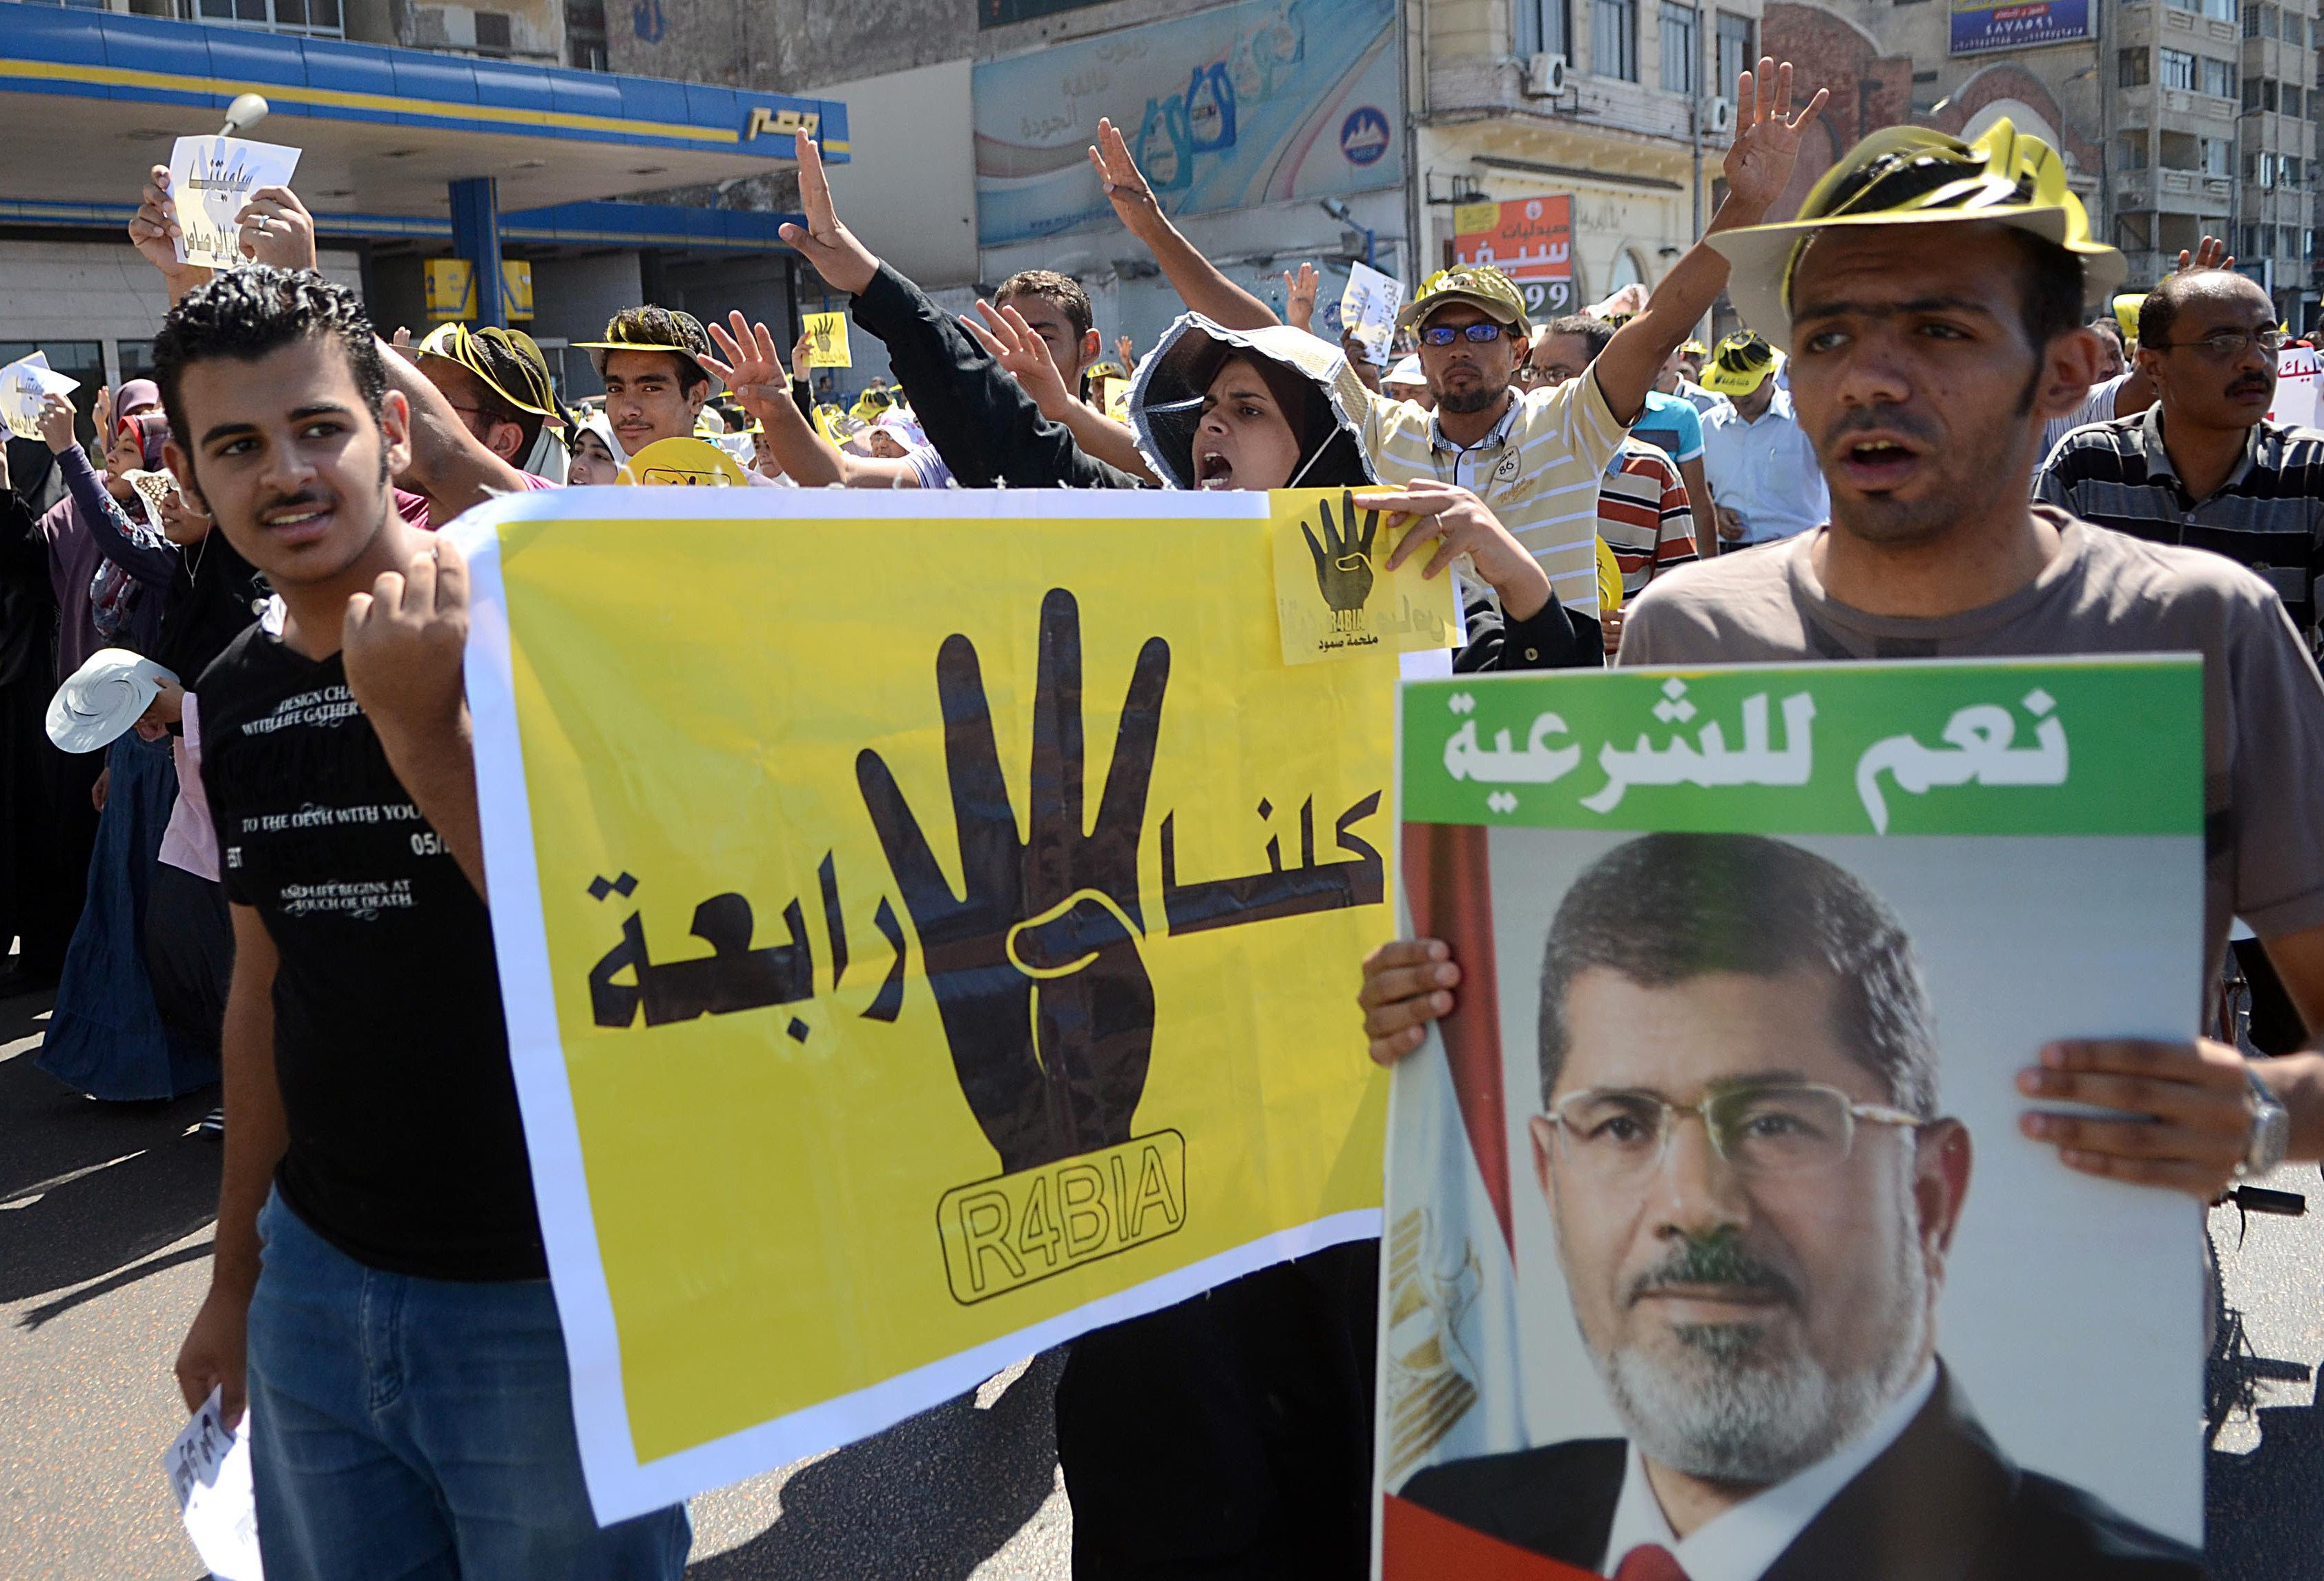 "Supporters of Egypt's ousted Islamist president Mohamed Morsi hold posters of the four finger symbol, known as ""Rabaa"", which means four in Arabic, to remember those killed in the crackdown on the Rabaa al-Adawiya protest camp in Cairo earlier in the year, as they take part in a demonstration against the military on September 20, 2013 along the seafront in the northern coastal city of Alexandria. Egypt's army-backed authorities arrested the spokesman of the Muslim Brotherhood on September 17 and froze the assets of other Islamists, in a new blow to deposed president Mohamed Morsi's supporters. (AFP PHOTO / STR)"